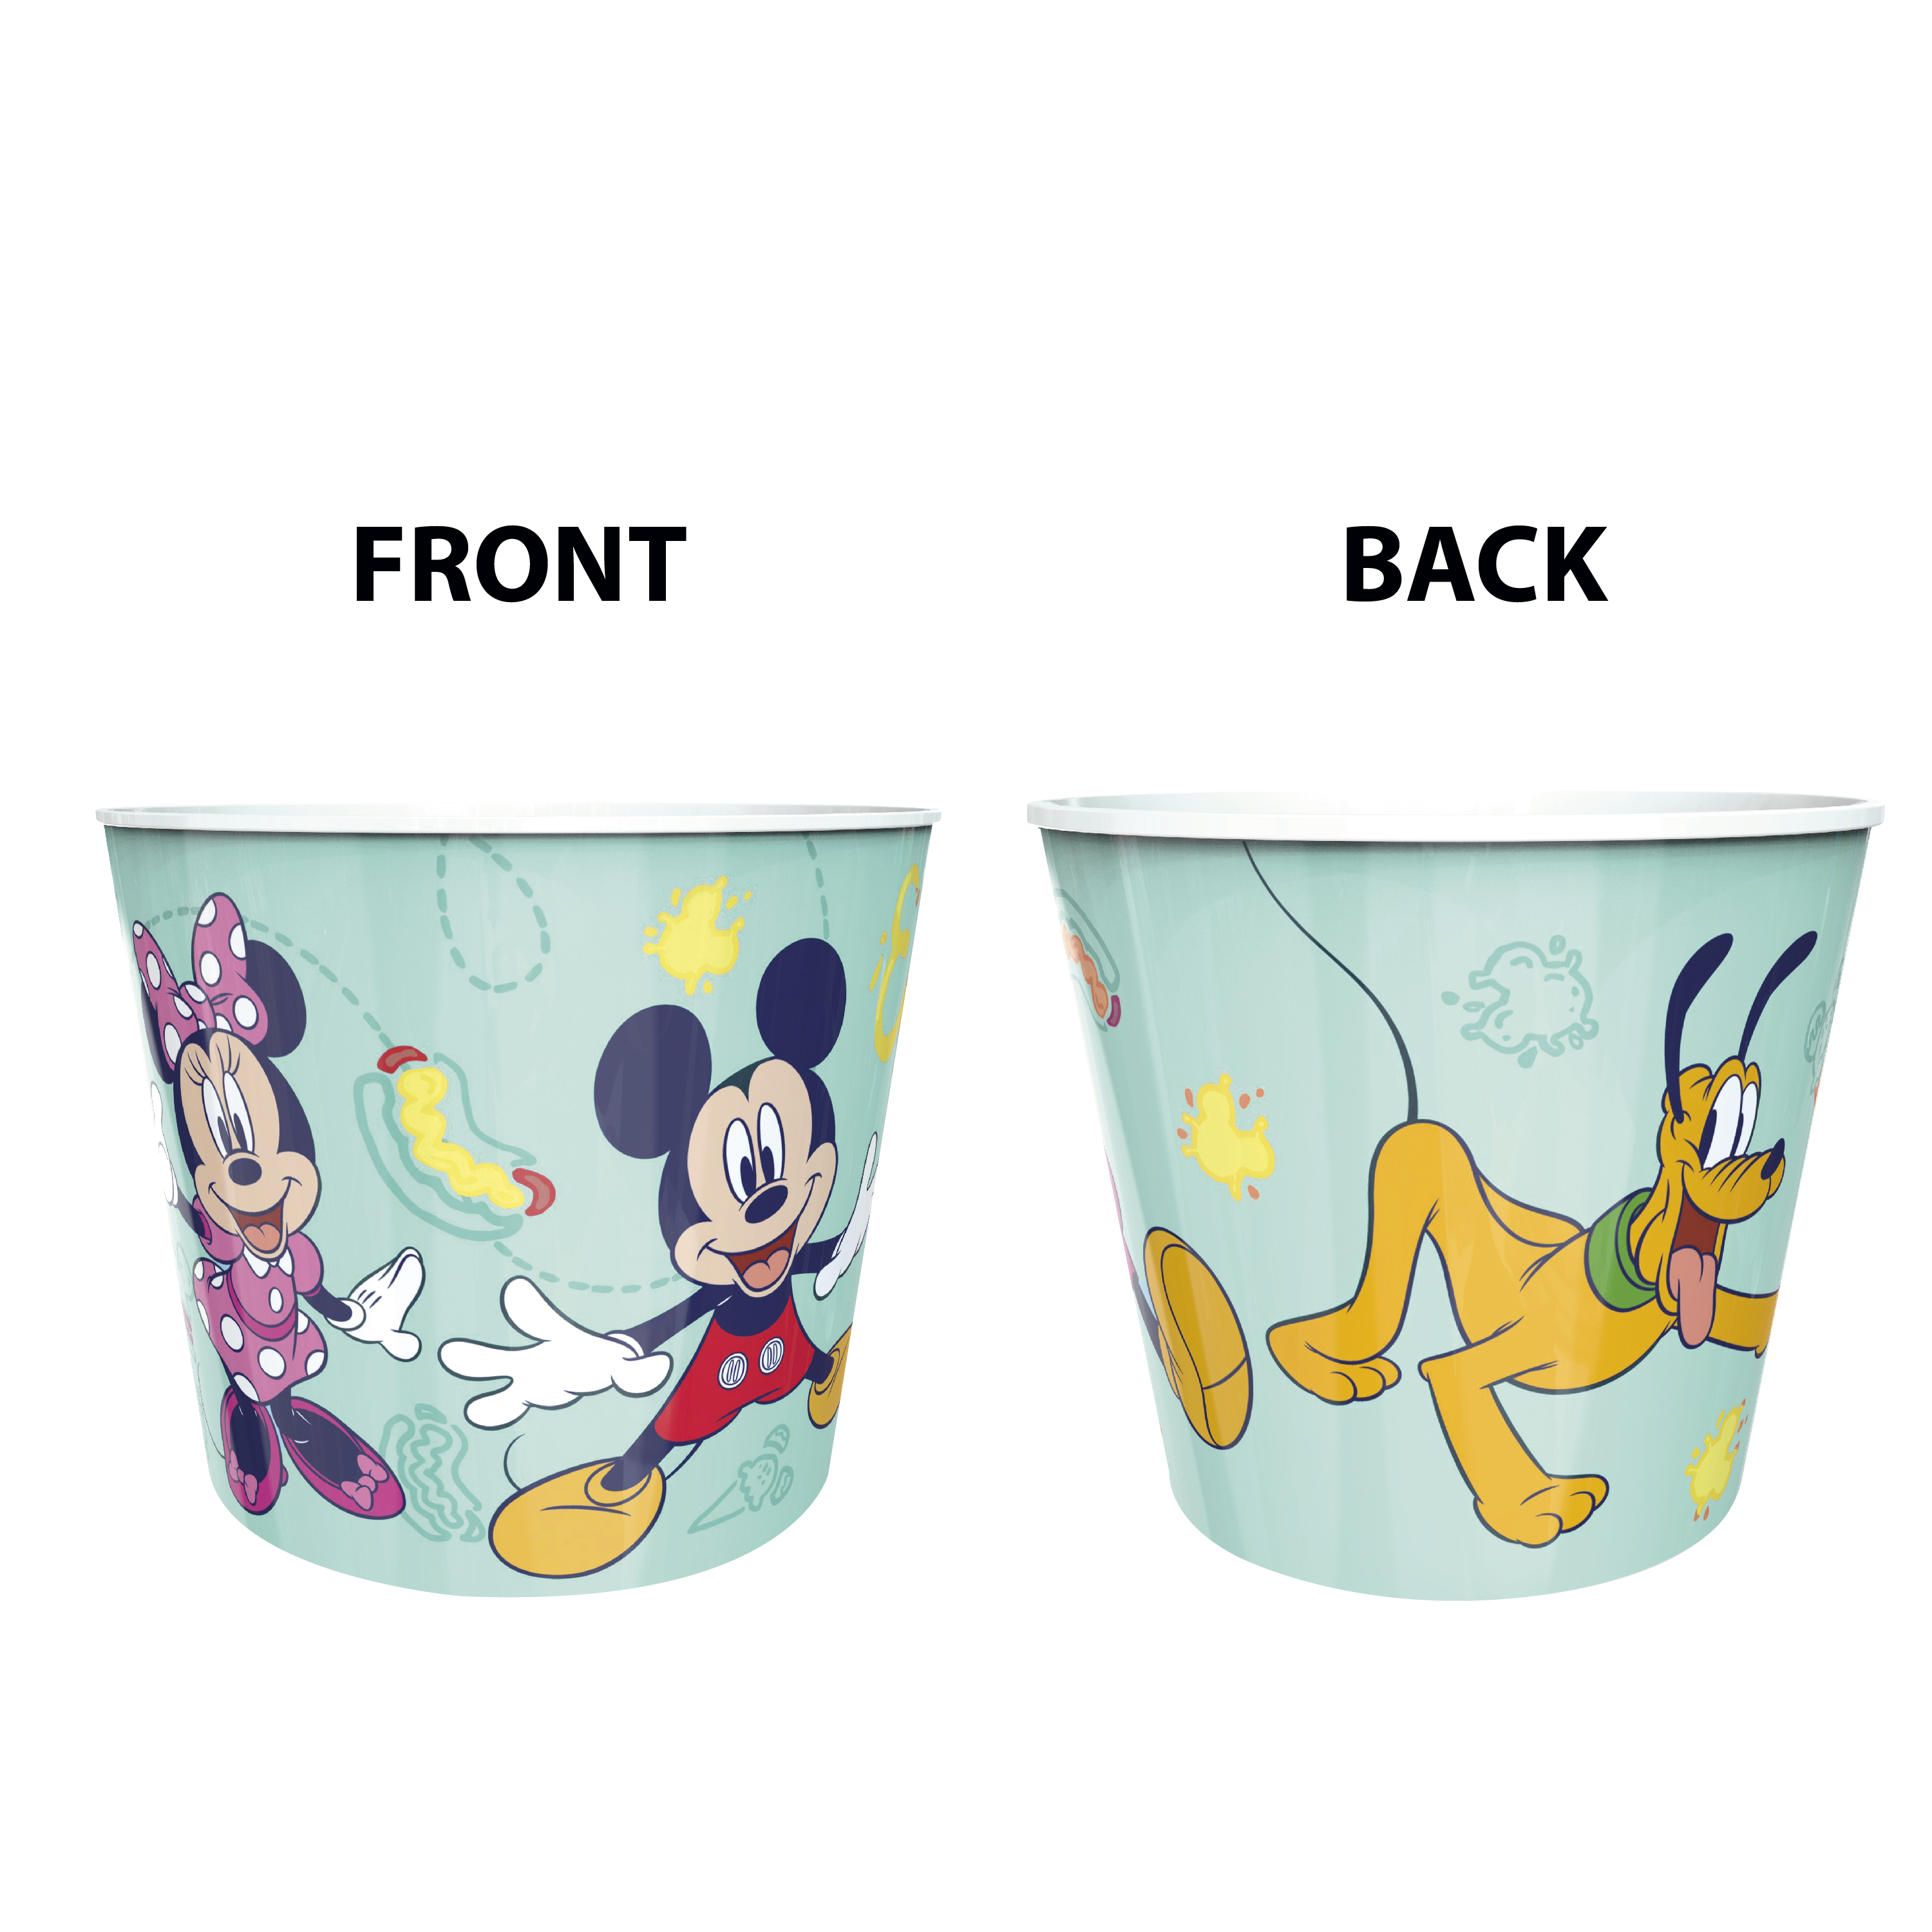 Disney Plastic Popcorn Container and Bowls, Mickey Mouse and Minnie Mouse, 5-piece set slideshow image 9